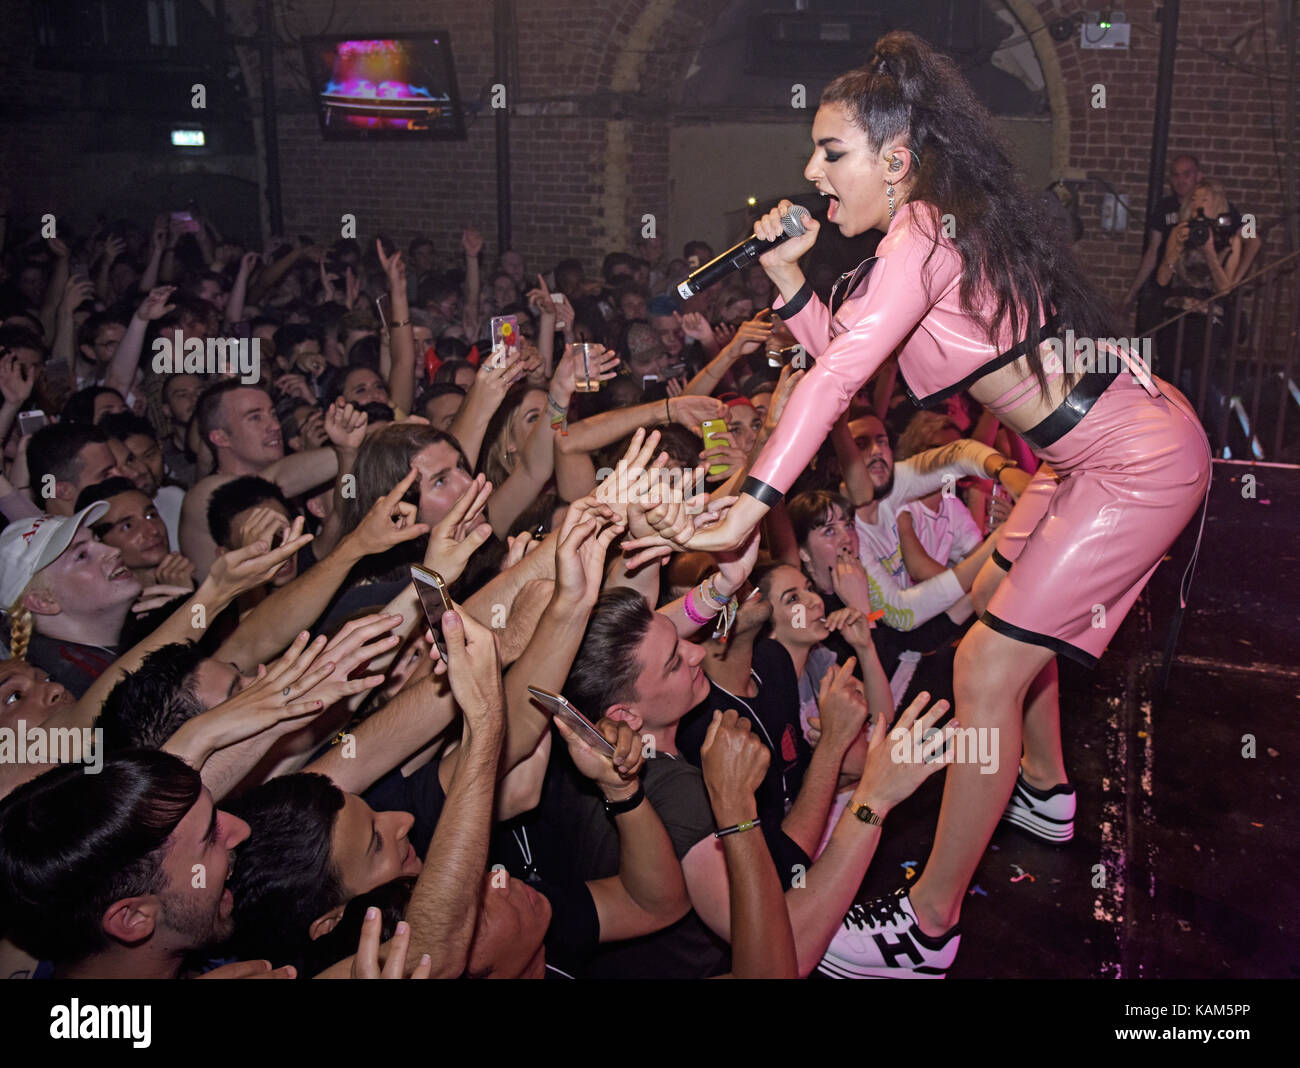 British singer and songwriter Charli XCX performed an